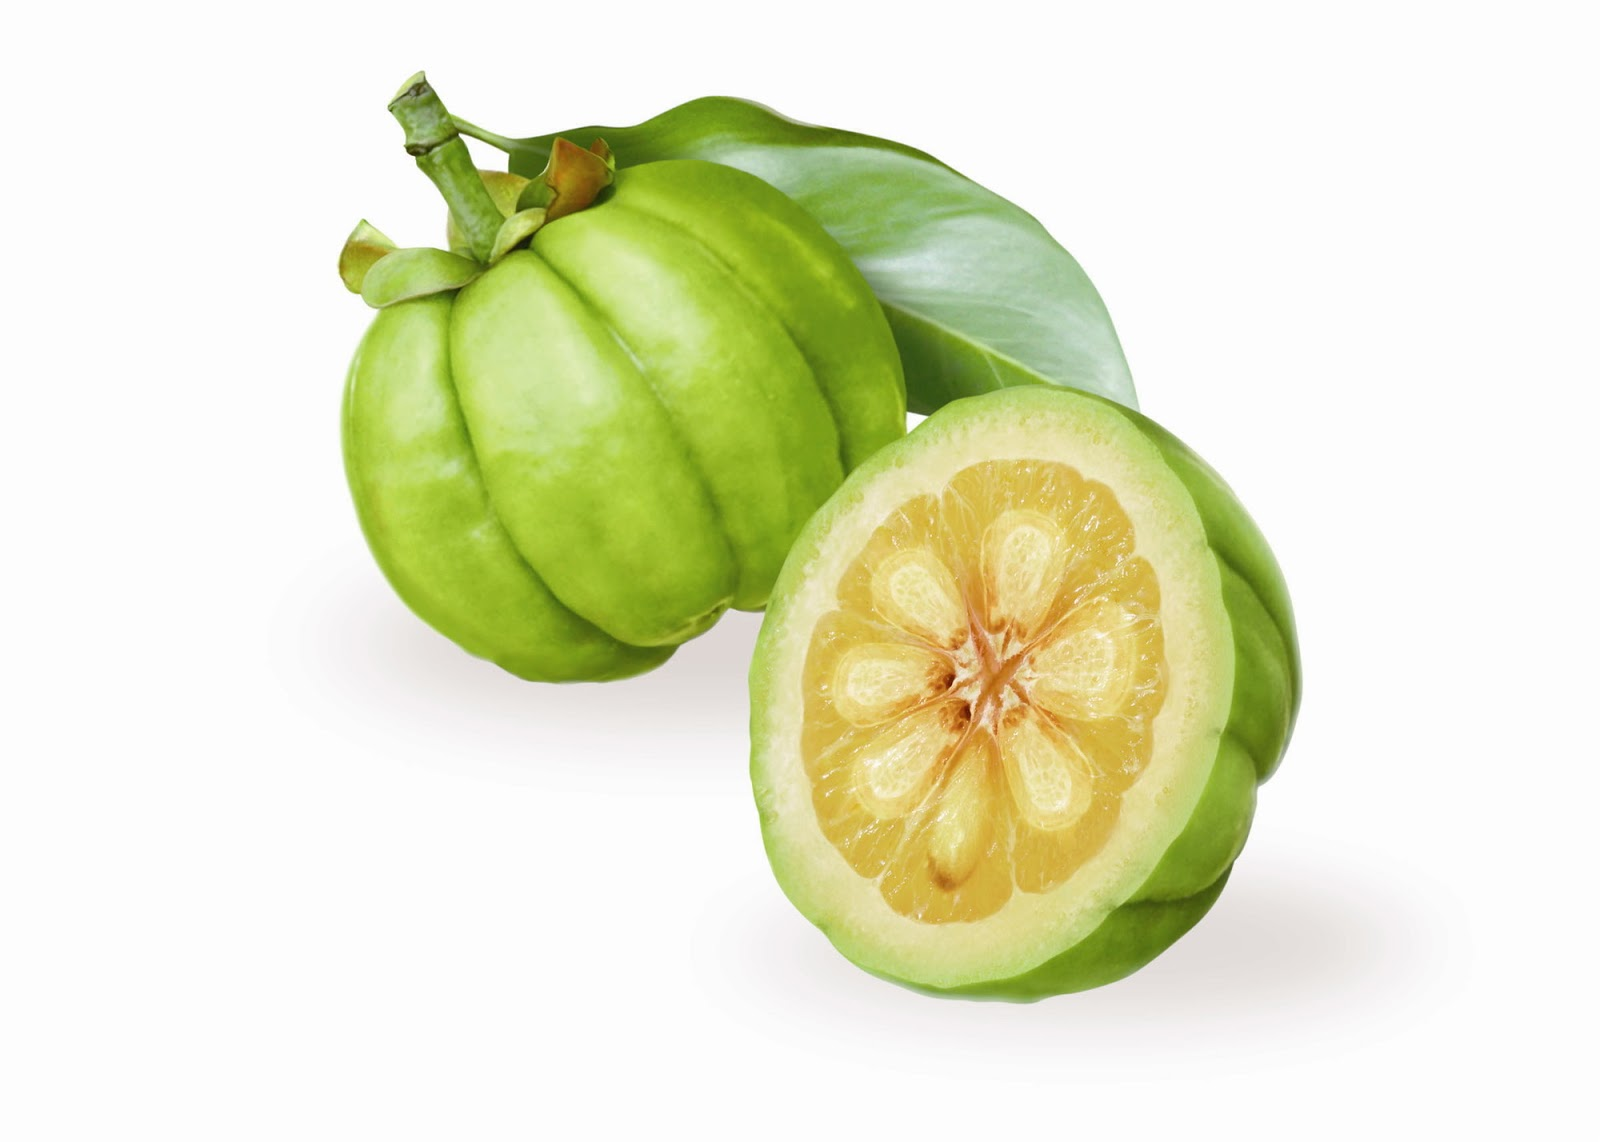 ... Garcinia Cambogia Diet Supplements, Garcinia Cambogia, Diet Foods